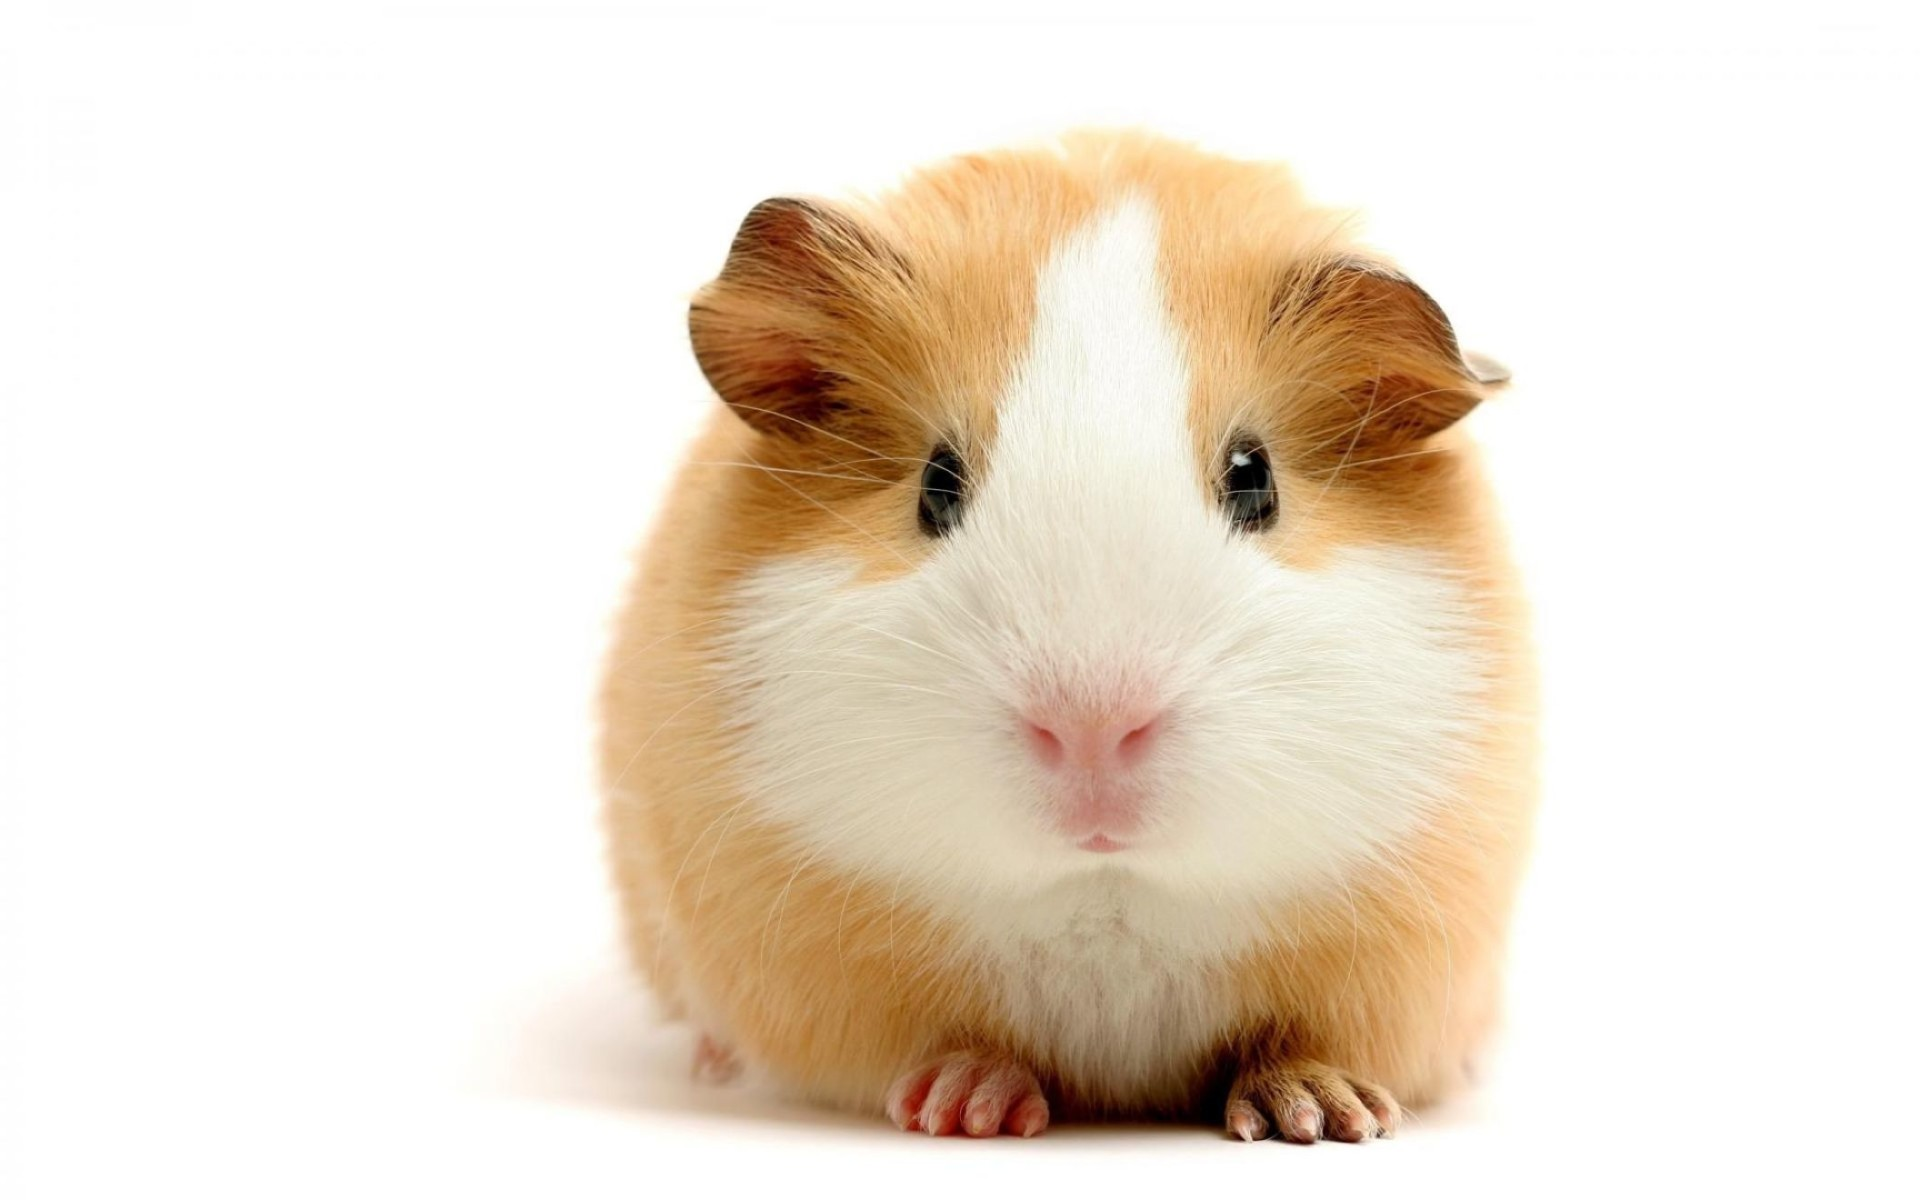 Cute Hamster Computer Wallpaper